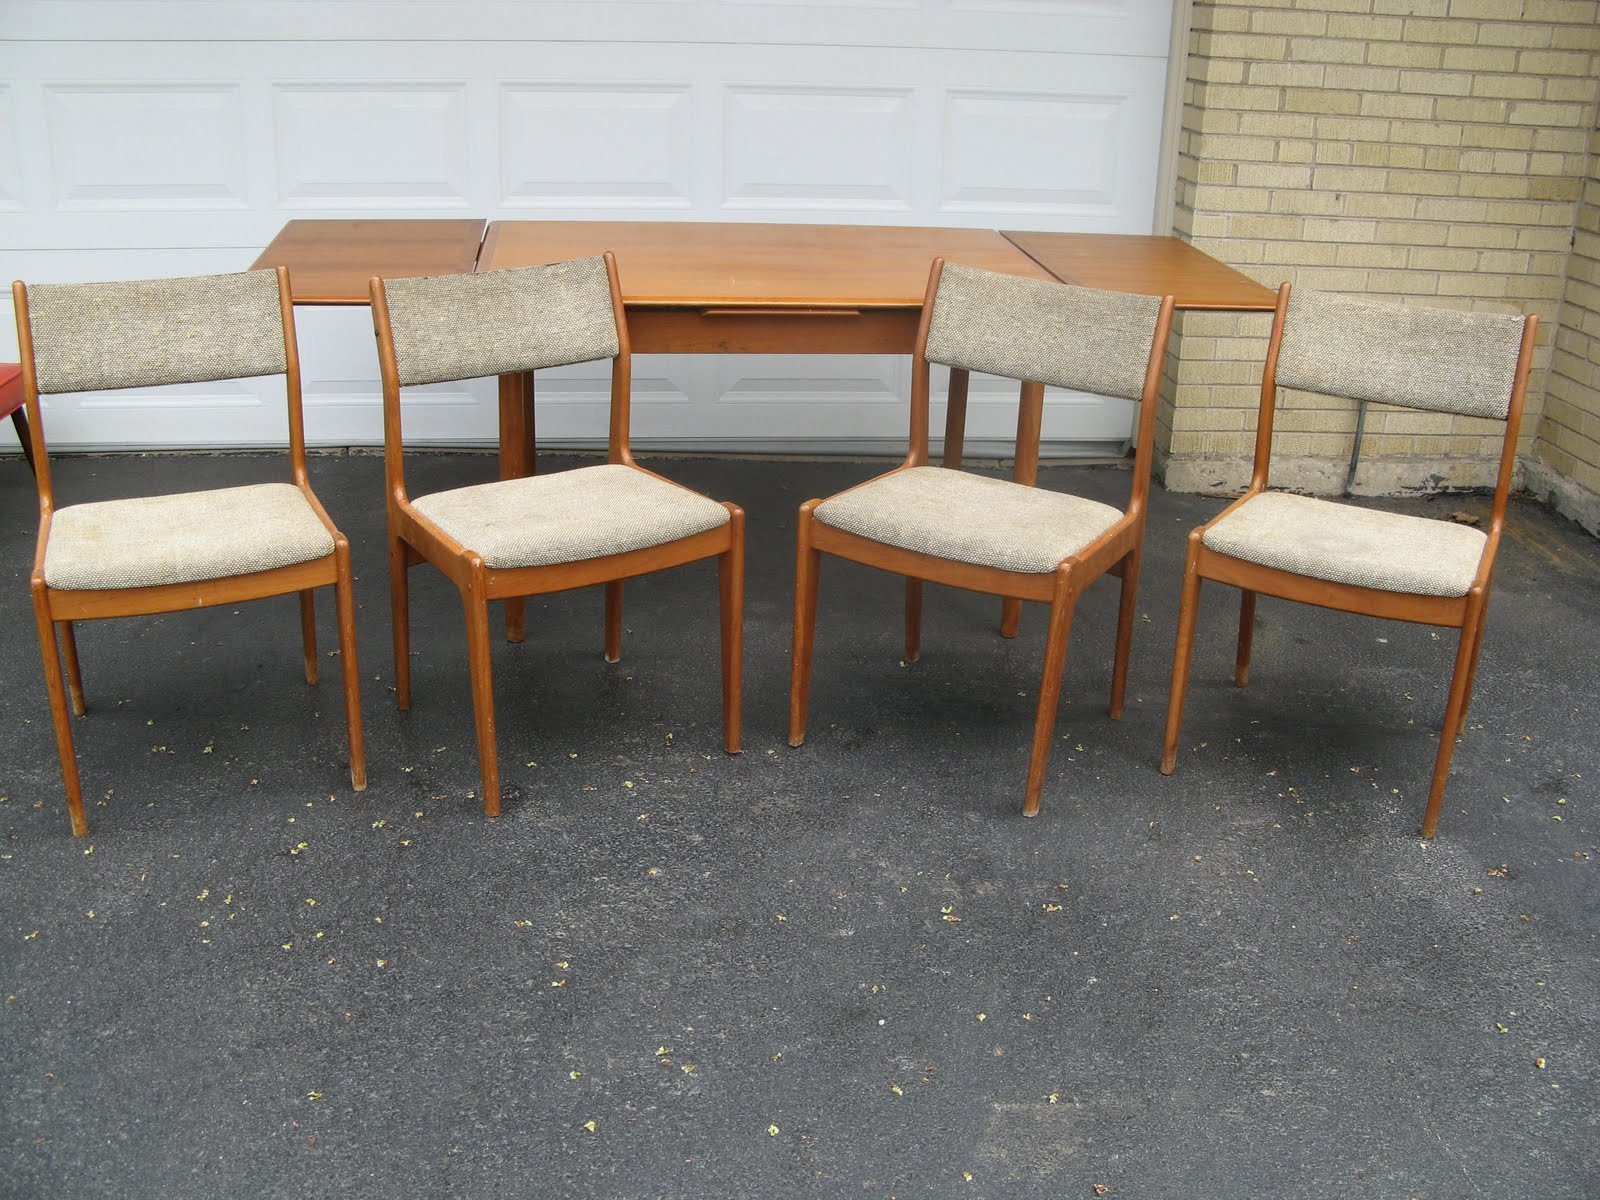 4 Danish Modern Teak Chairs Come With The Table Above. All Need To Be  Refinished And They All Need New Upholstery. Again, Teak Is Easy To Refinish .